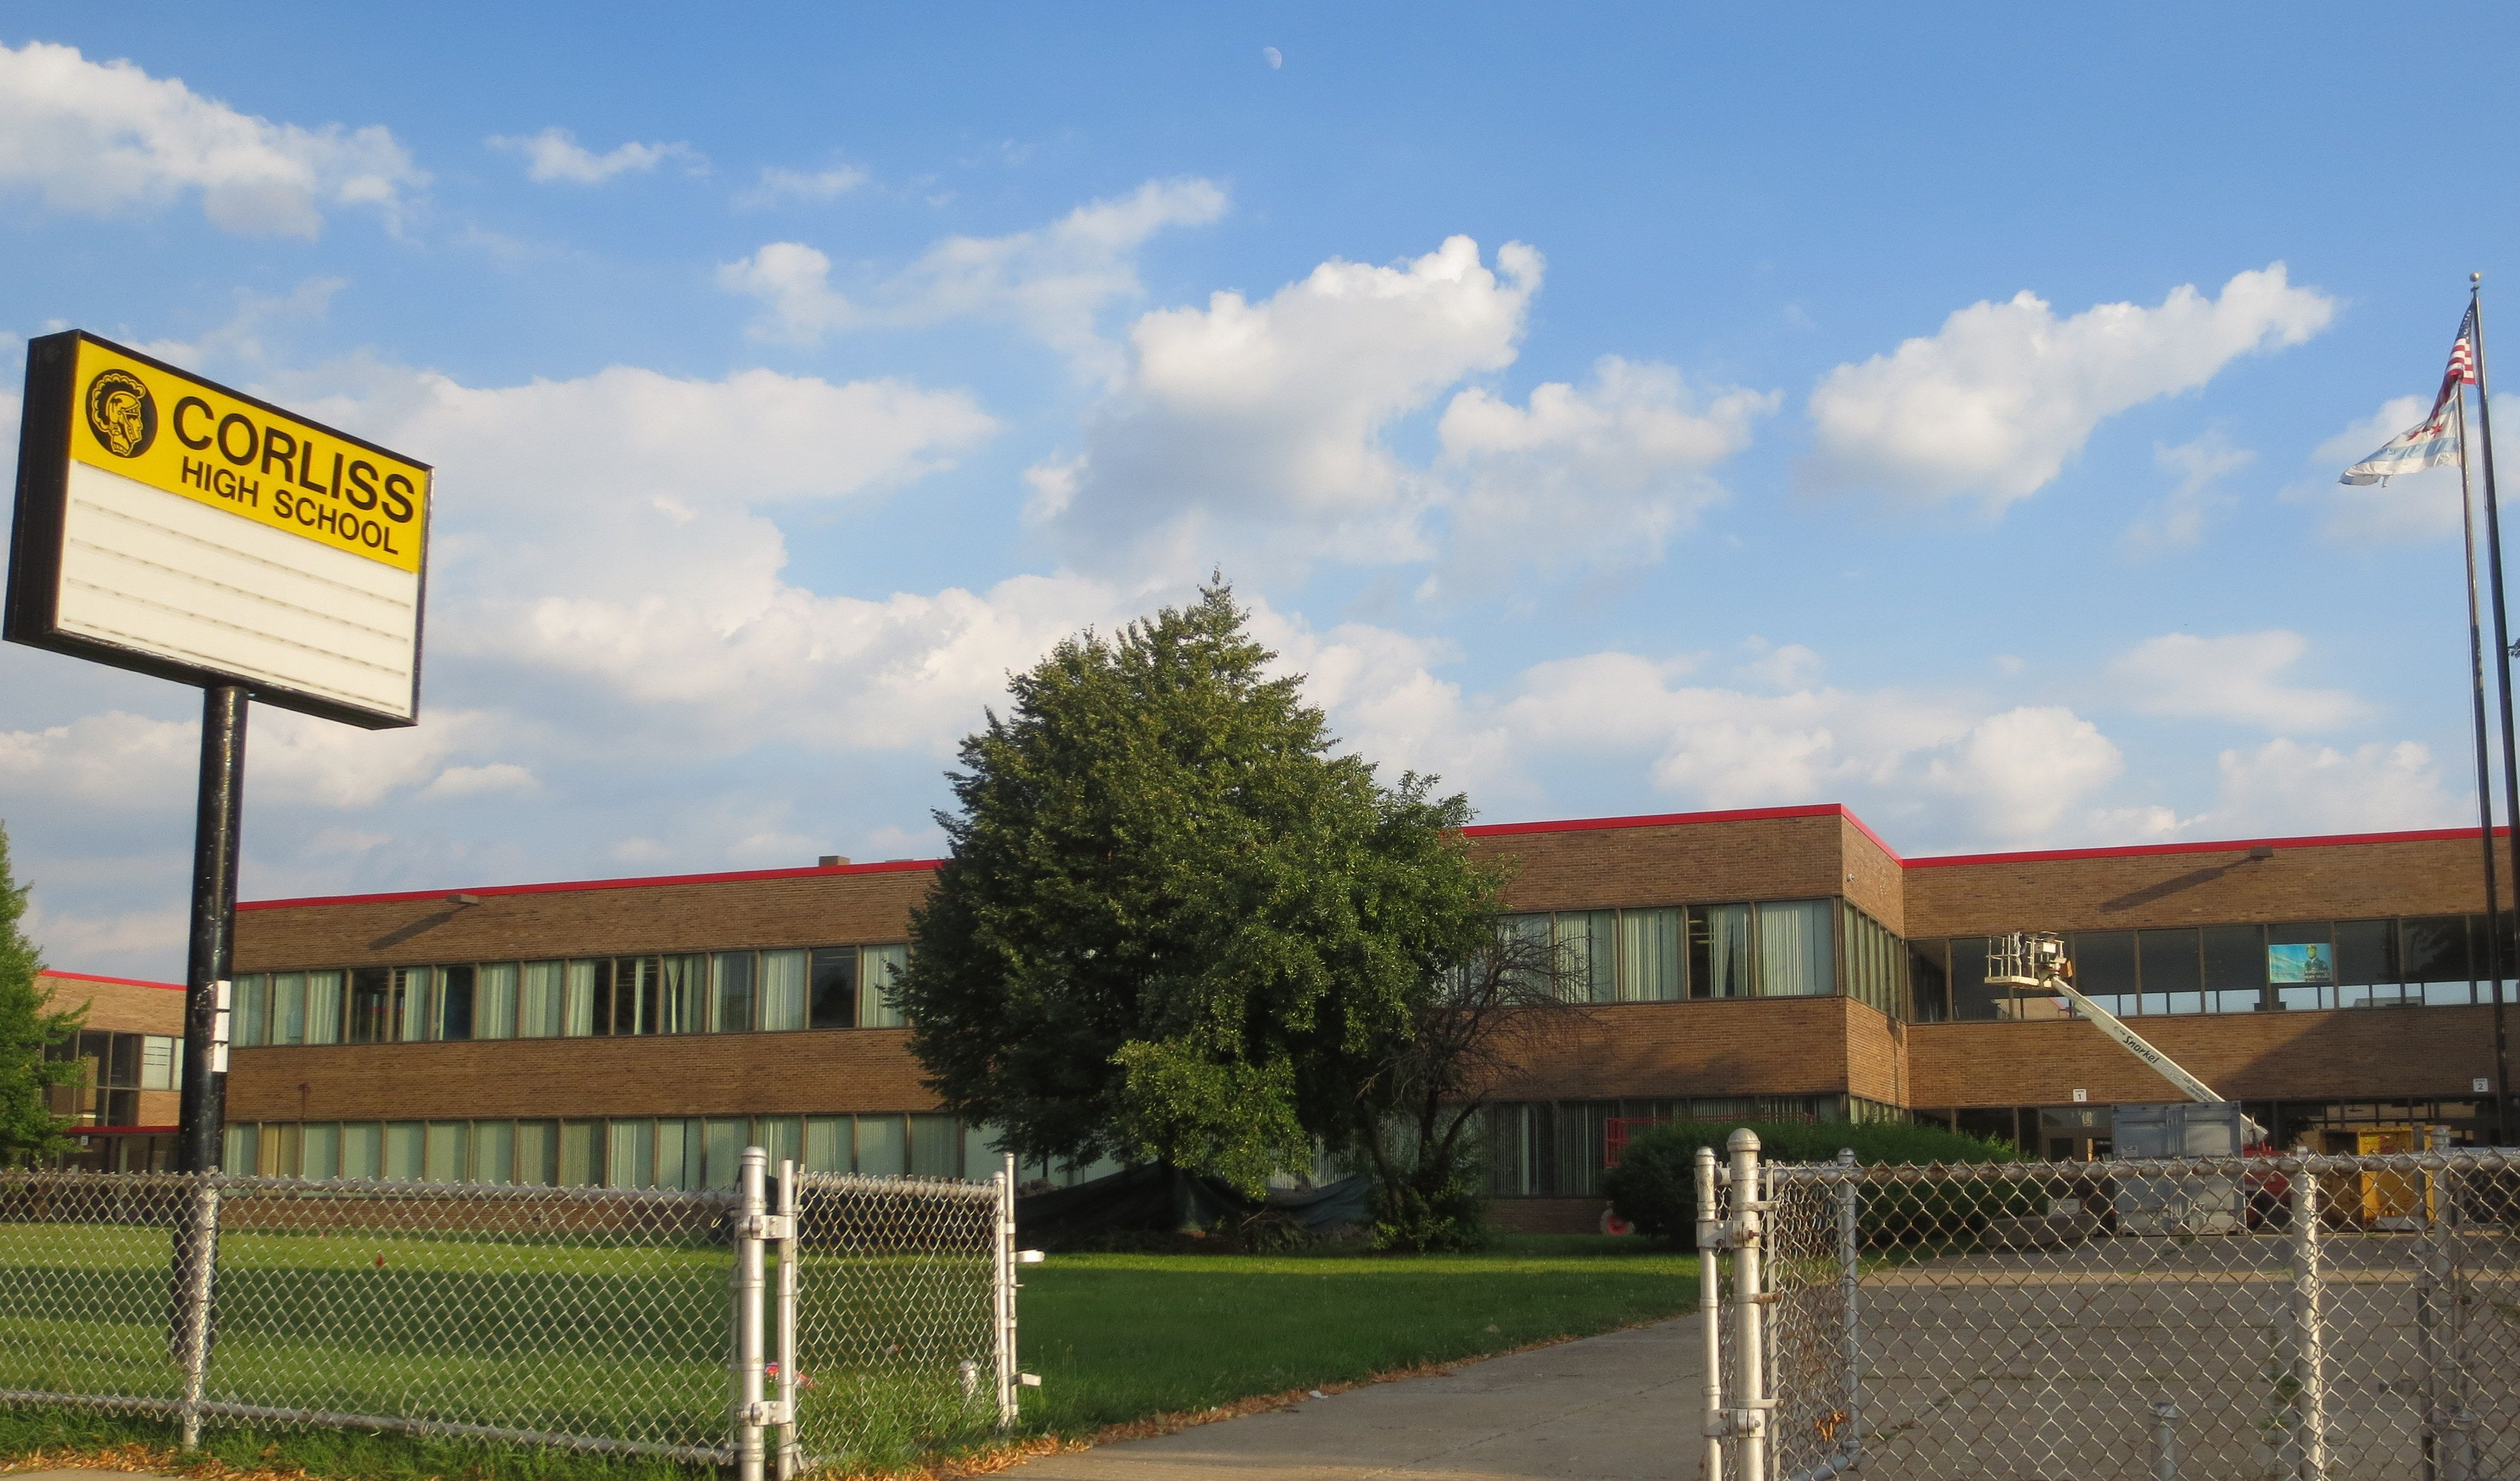 featured image George H Corliss High School